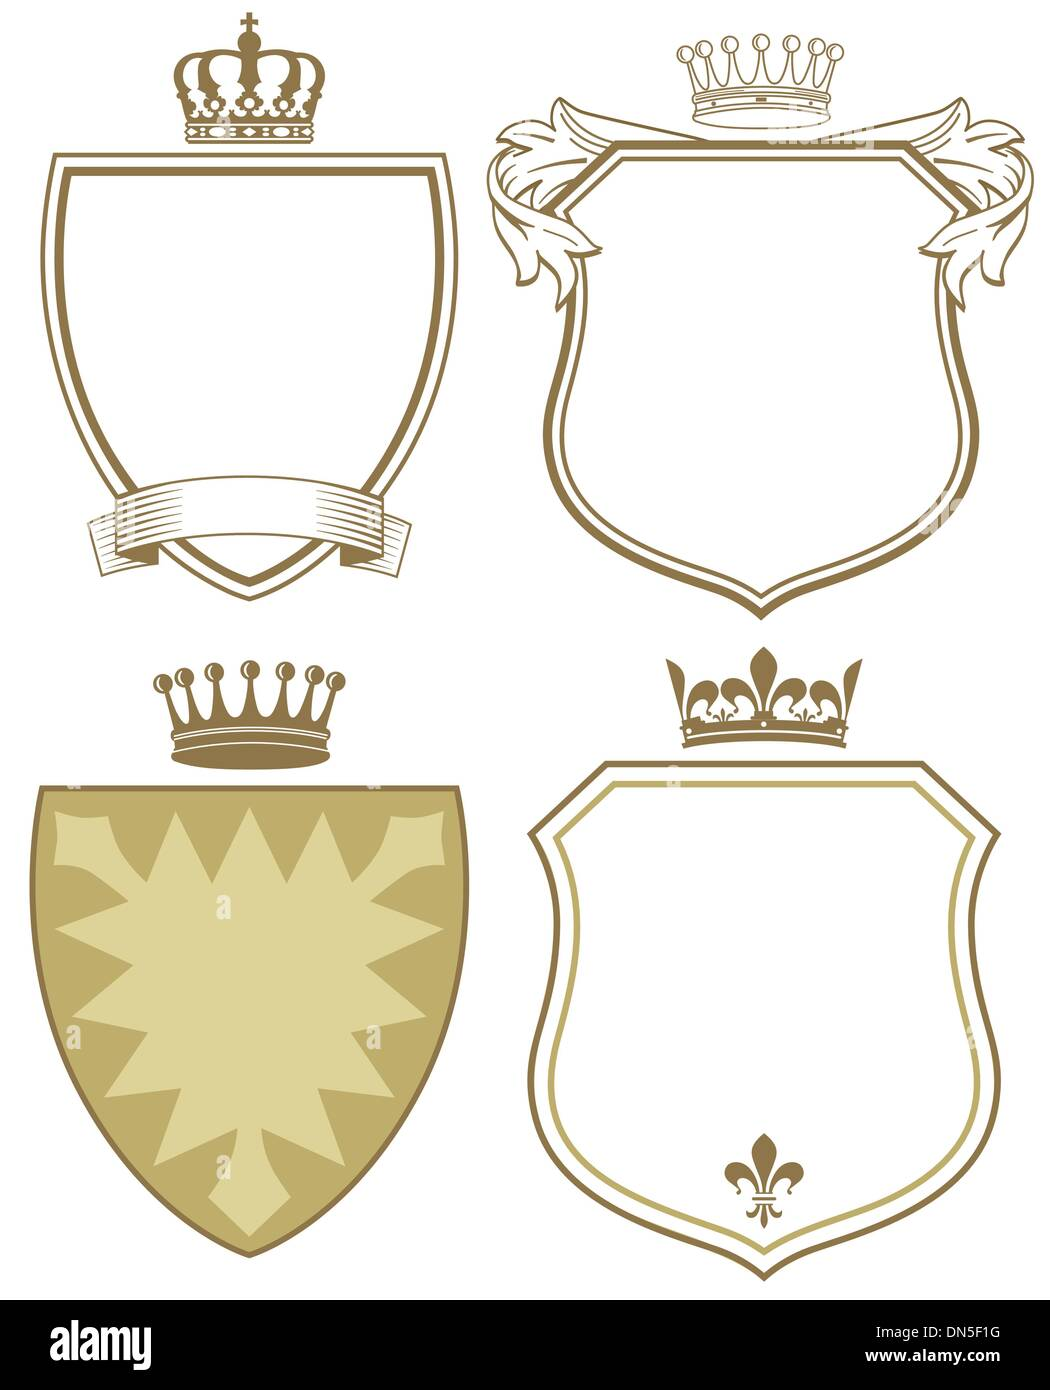 Coat of arms with shield and crown - Stock Vector